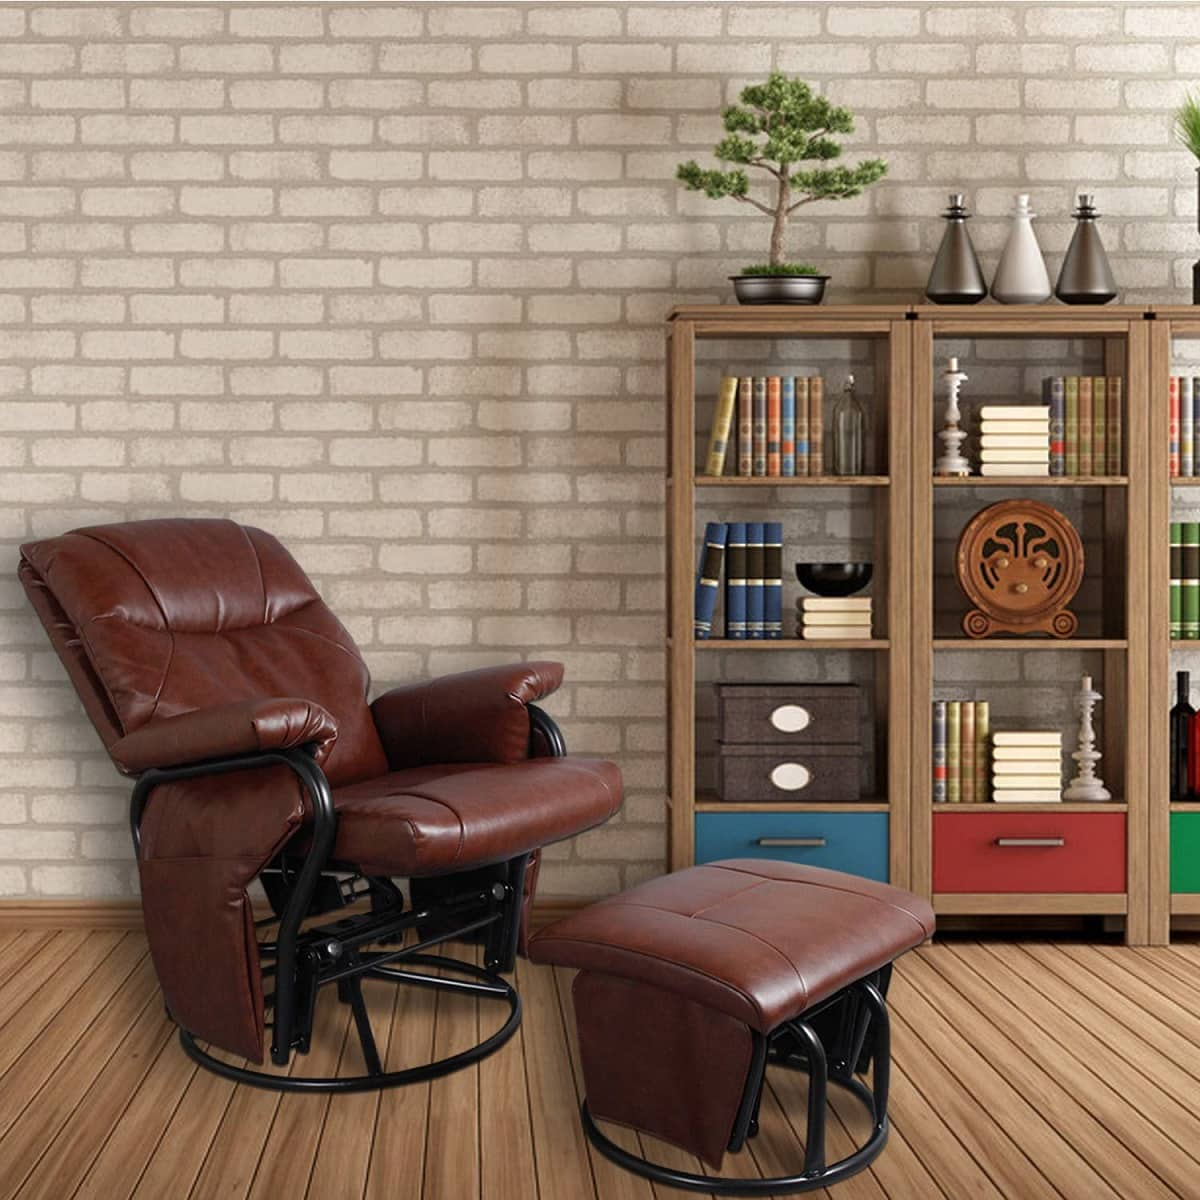 faux leather glider recliner chair image